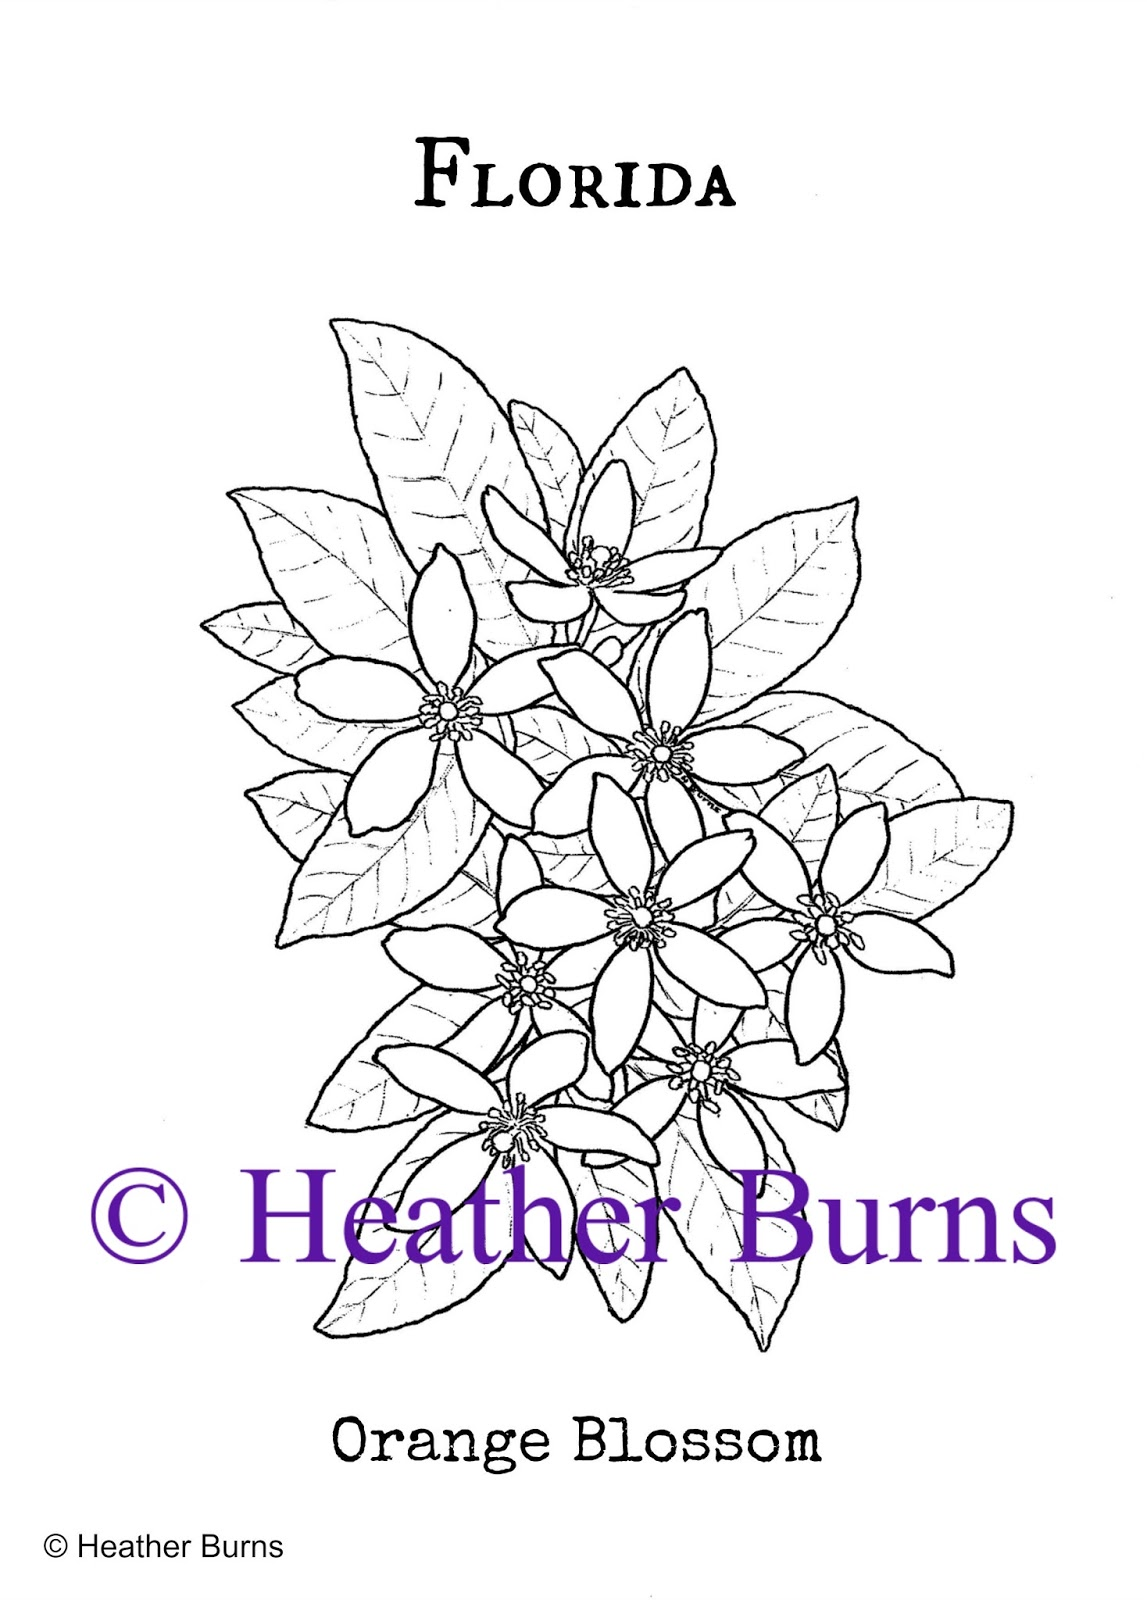 State Flower Coloring Book Florida Orange Blossom Coloring Page